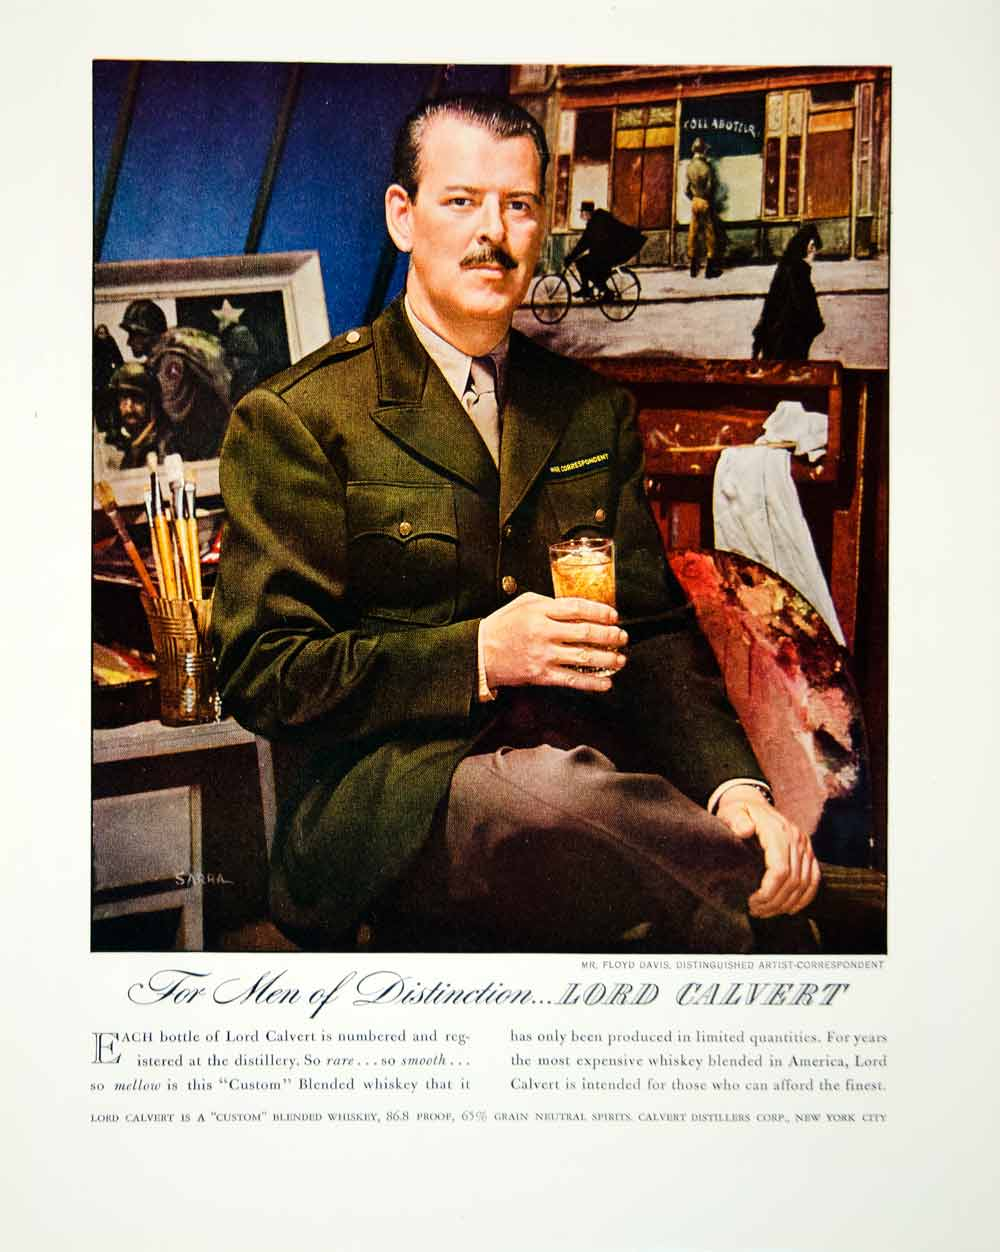 1946 Ad Lord Calvert Sarra Floyd Davis Blended Whisky New York FTM1